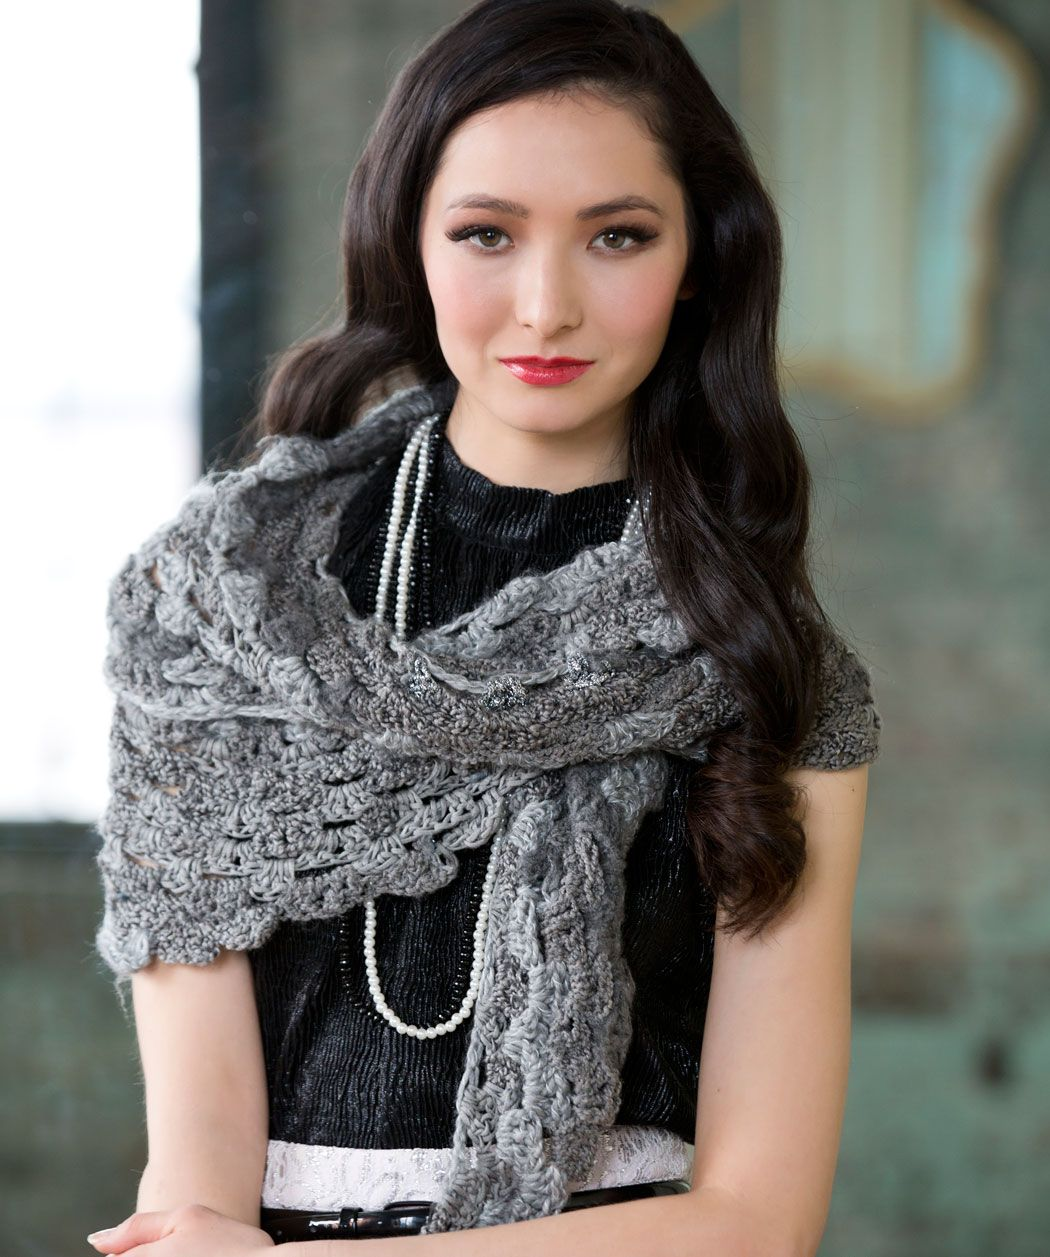 Shades of grey scarf free crochet pattern redheart shades of grey scarf free crochet pattern redheart boutiquechanges bankloansurffo Image collections